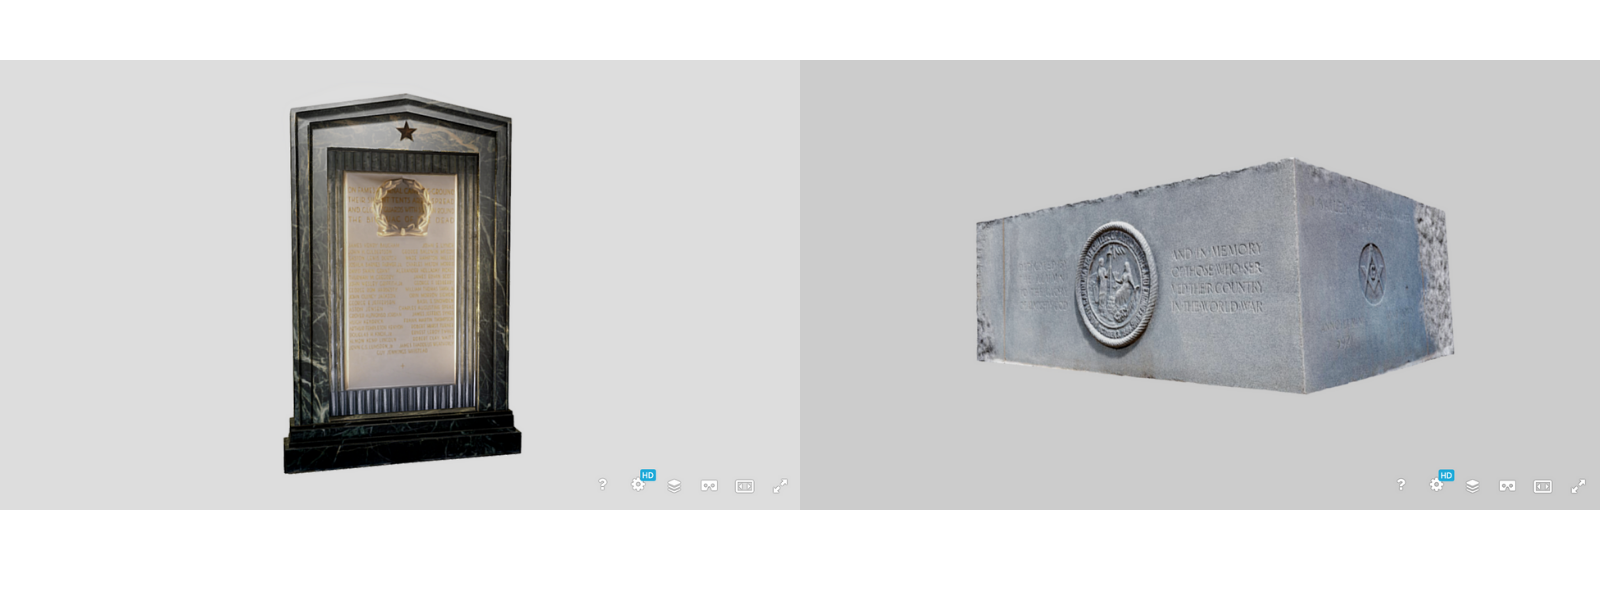 3D models of the Belltower's plaque and cornerstone in Sketchfab